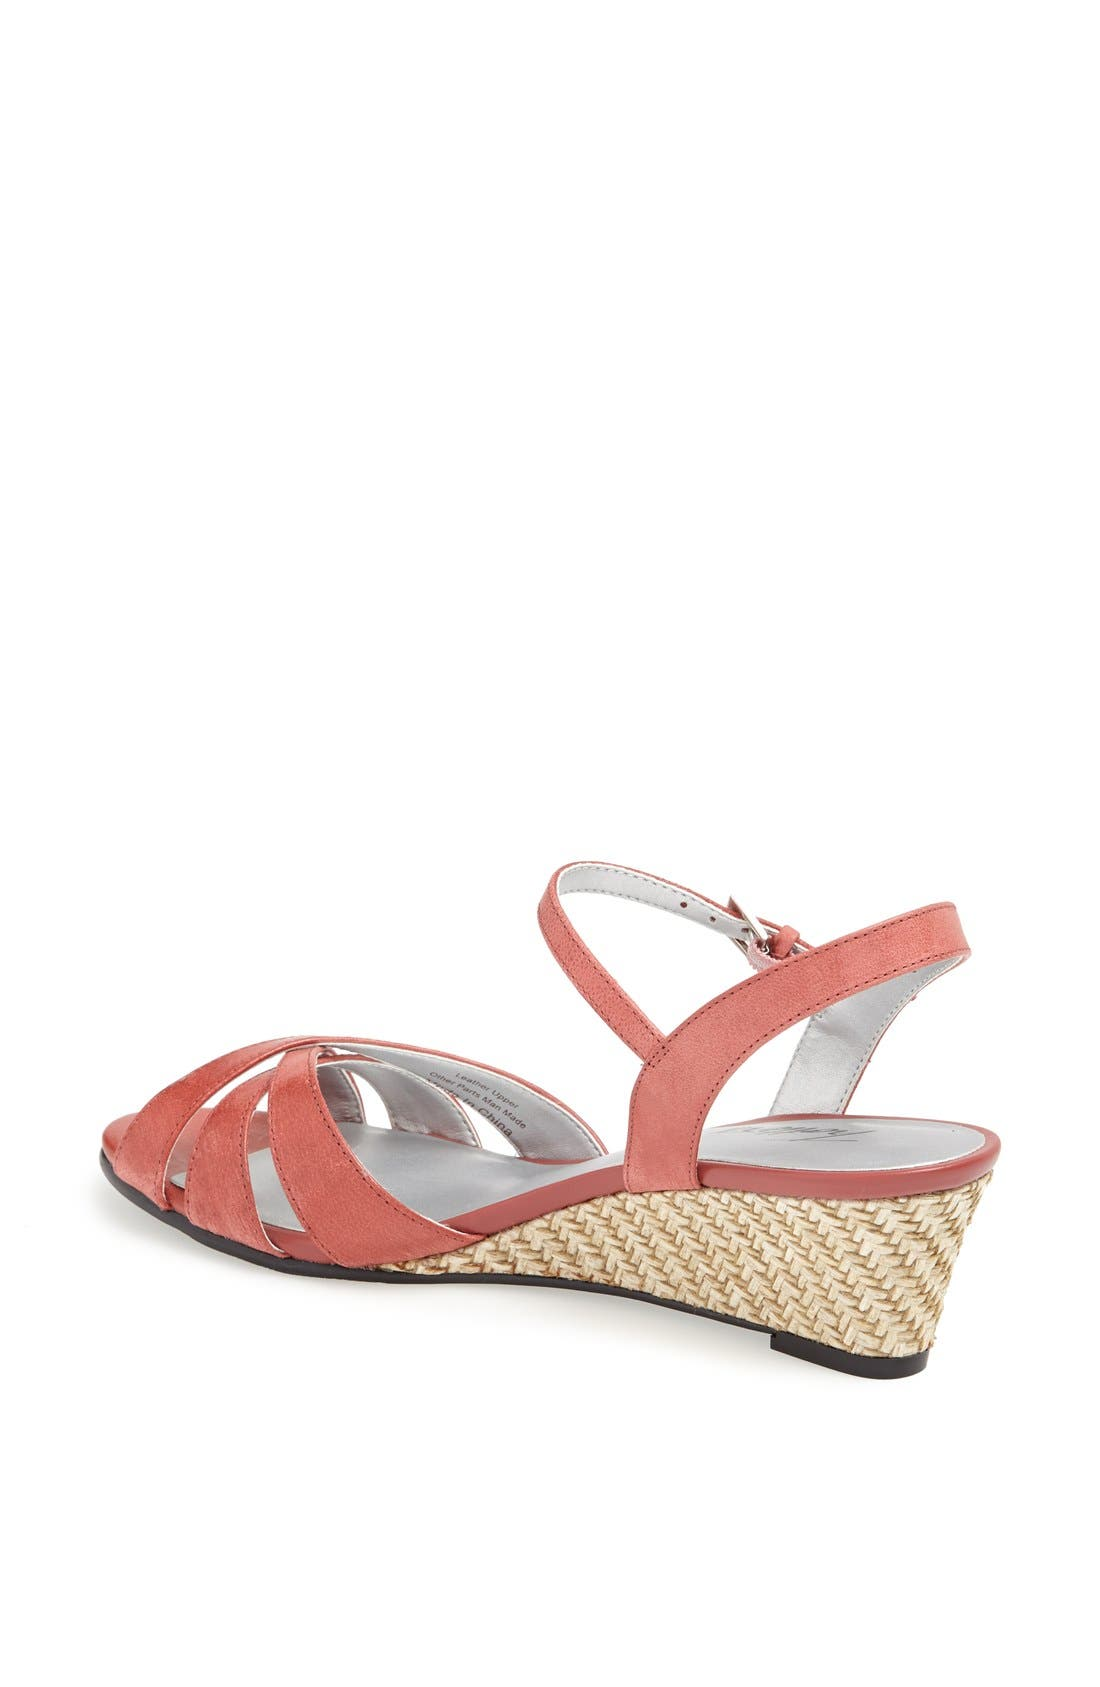 'Mickey' Wedge Sandal,                             Alternate thumbnail 40, color,